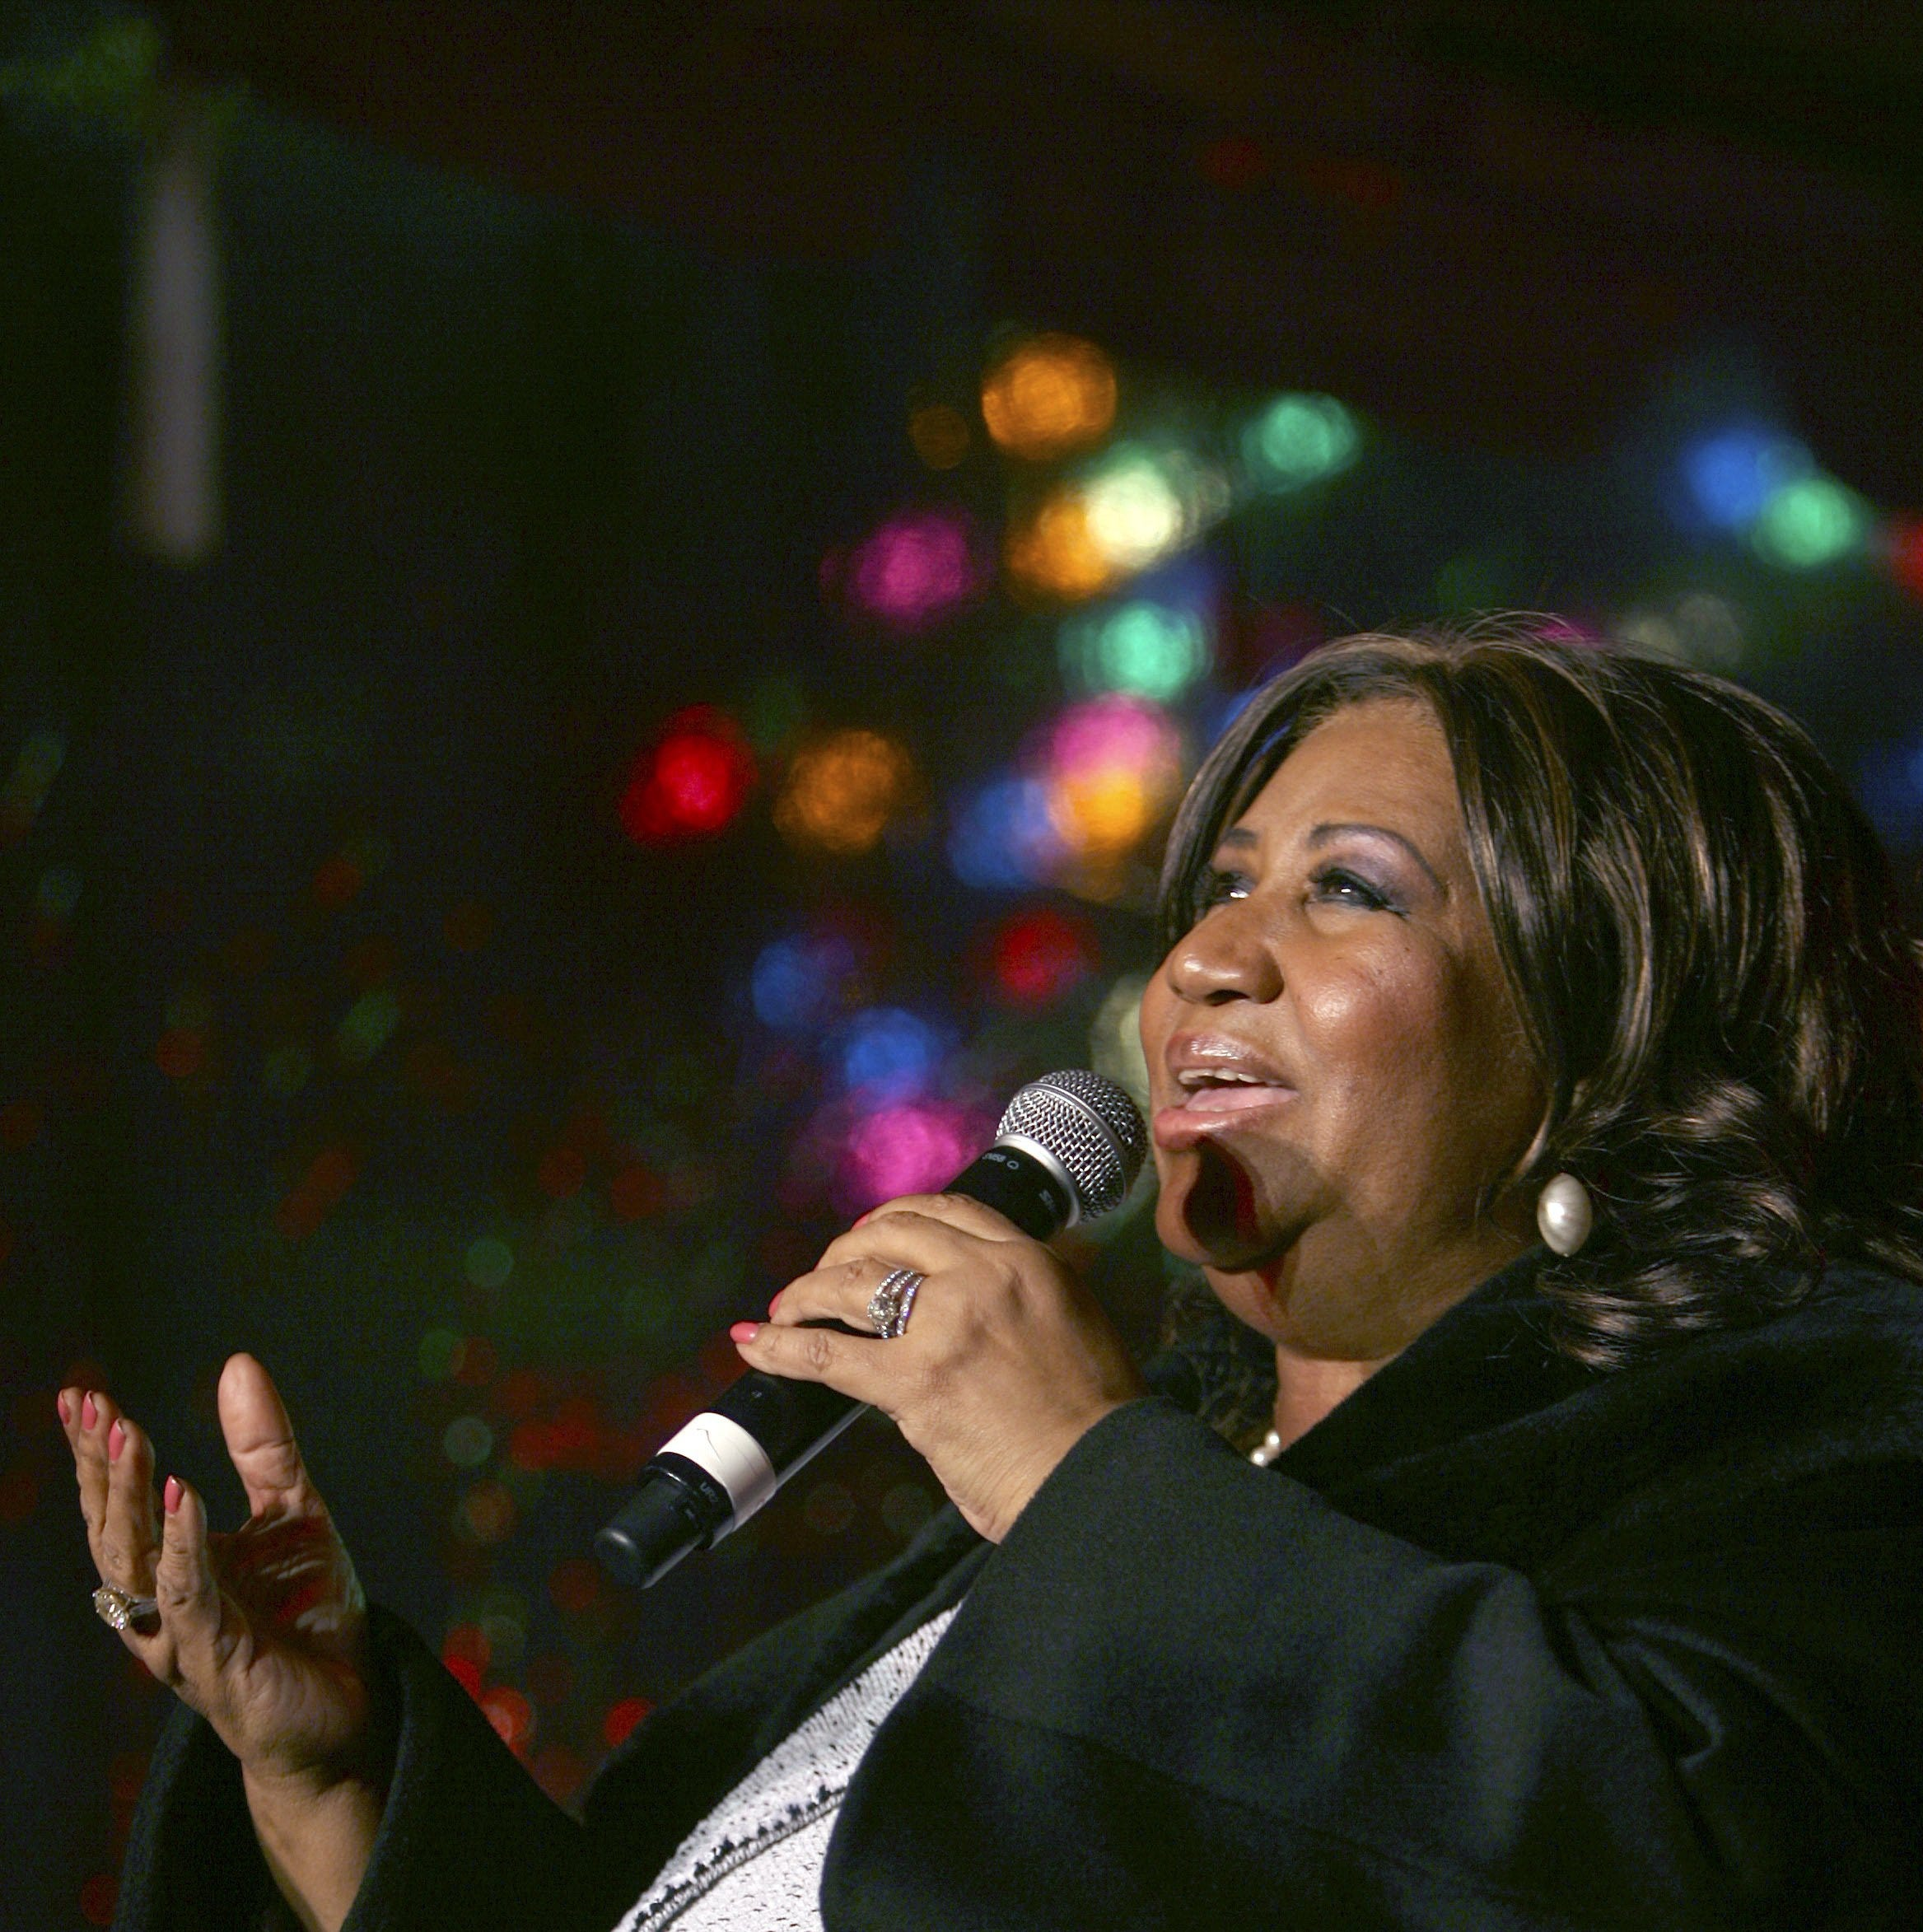 LISTEN: Aretha Franklin's remixed 'Silent Night'